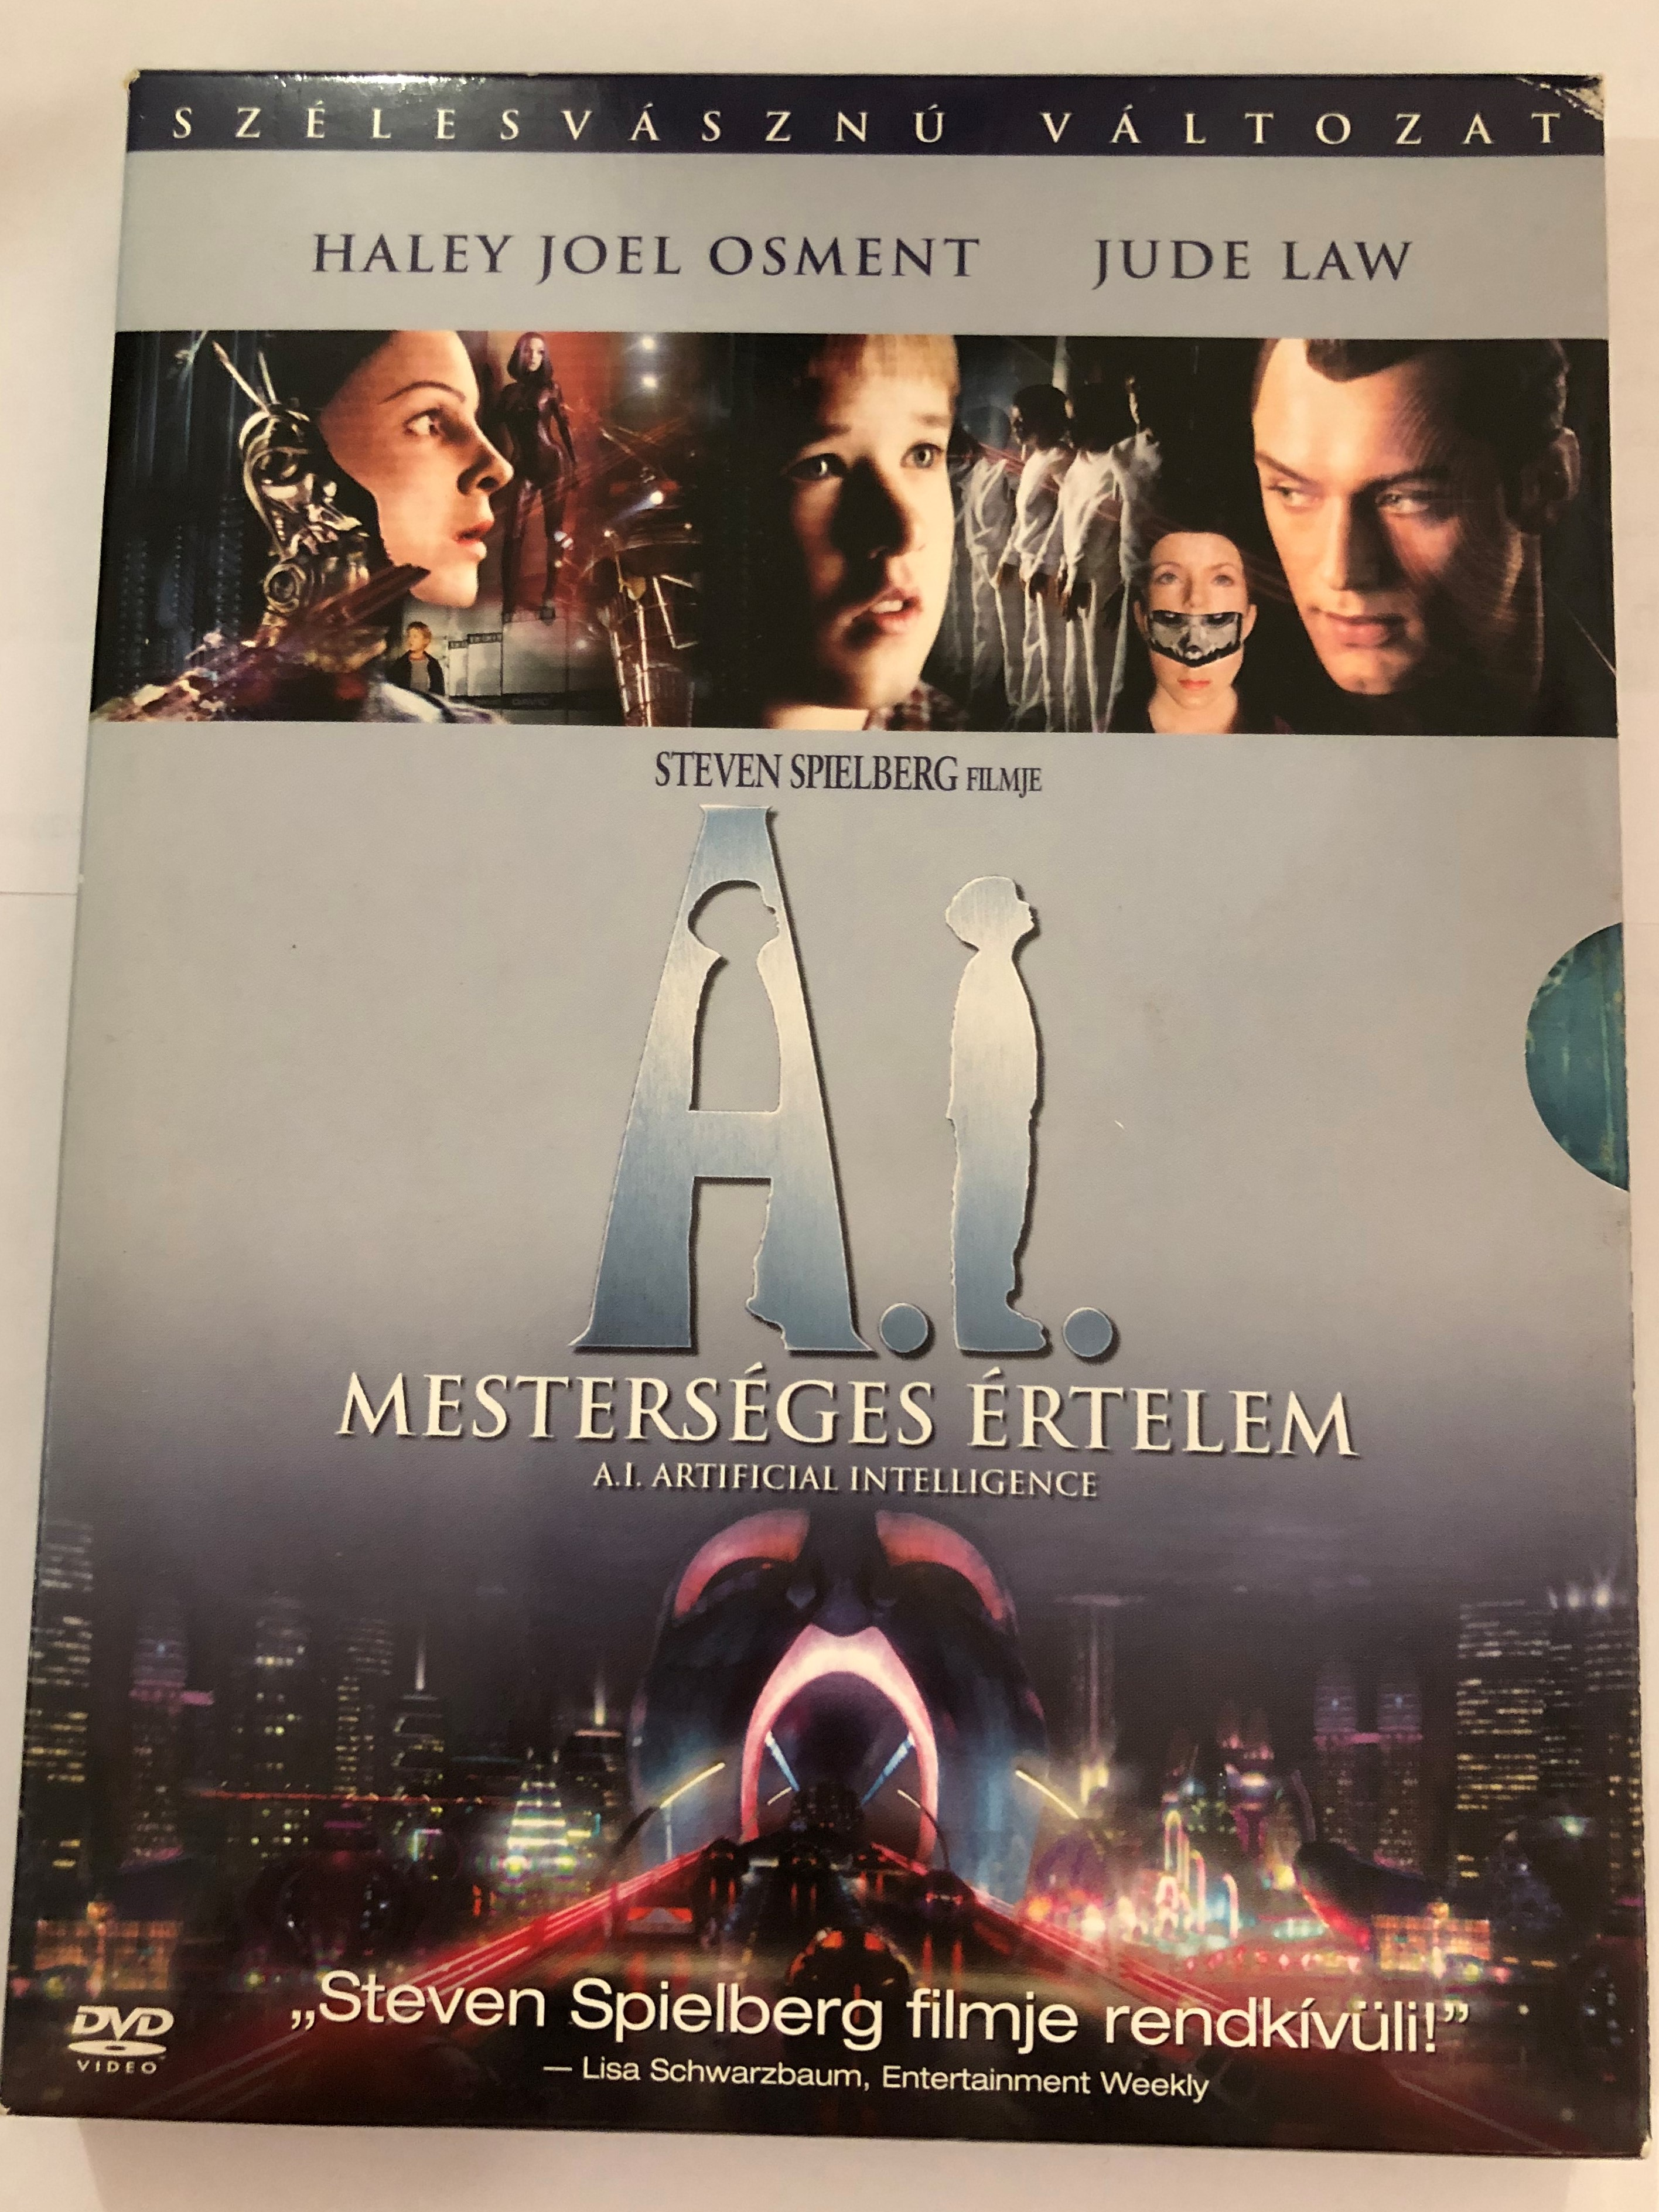 a.i.-artificial-intelligence-dvd-2001-mesters-ges-rtelem-directed-by-steven-spielberg-1.jpg